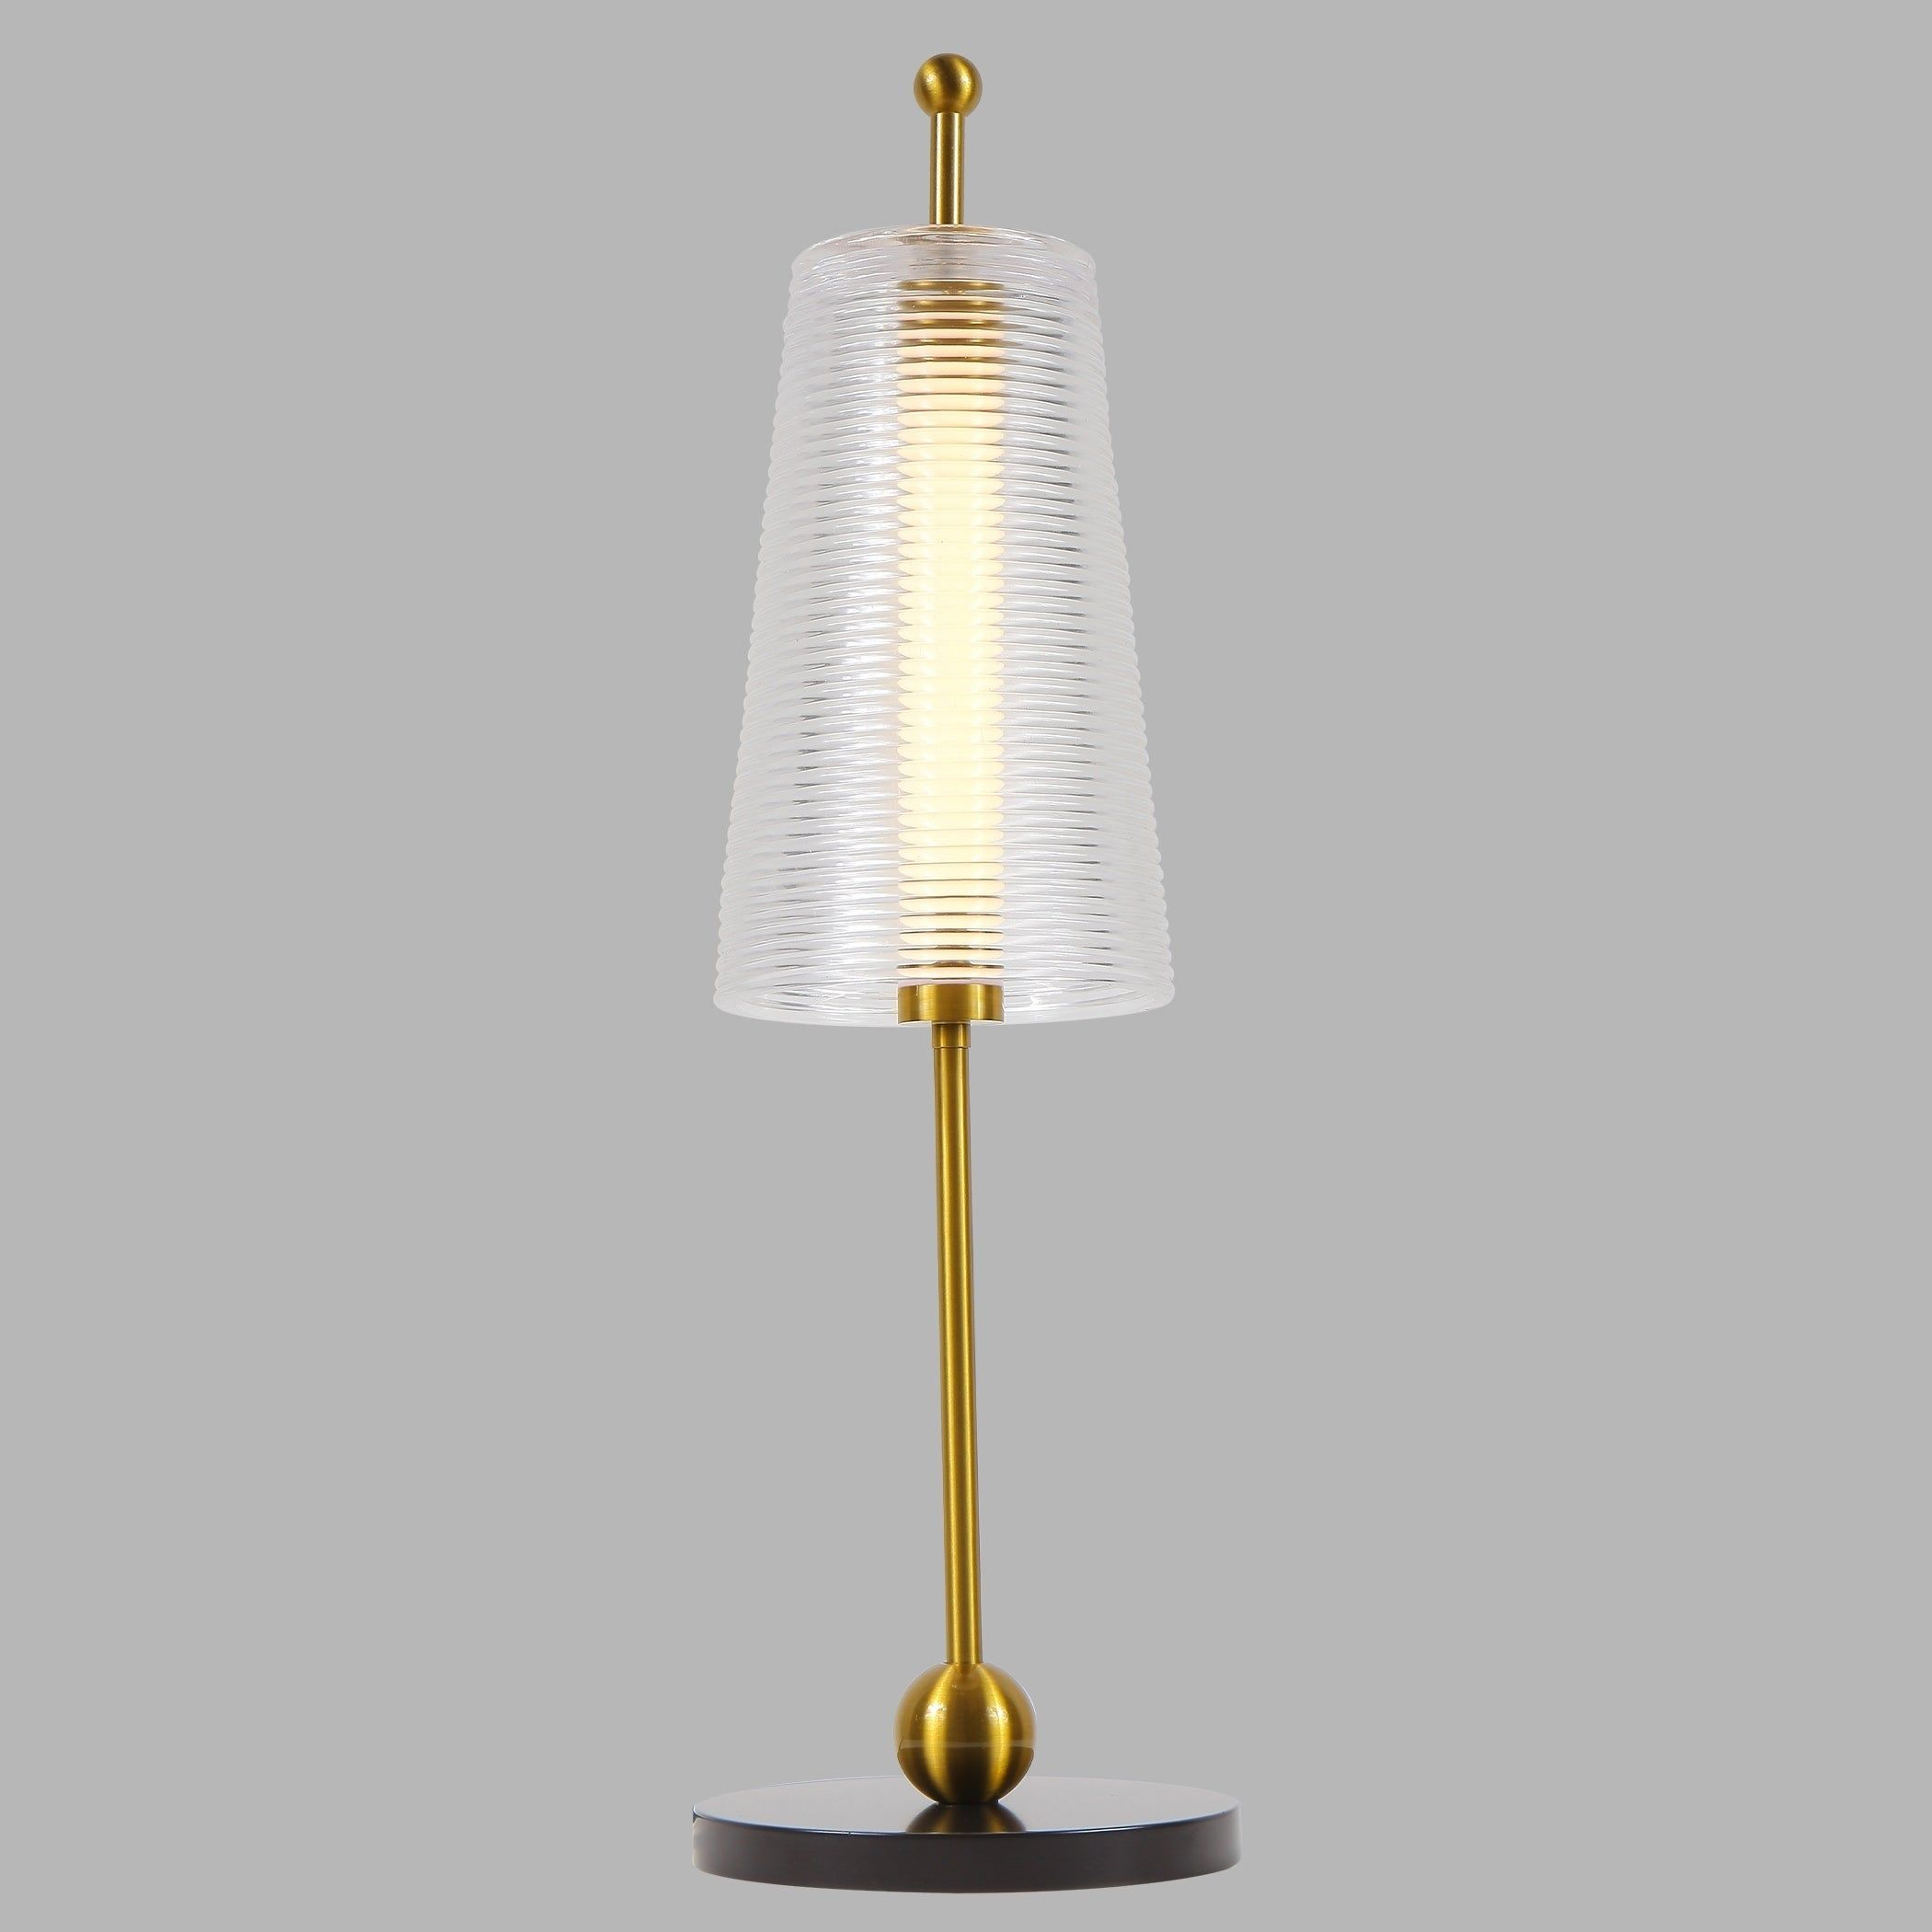 Online Shopping Bedding Furniture Electronics Jewelry Clothing More Table Lamp Lamp Buffet Table Lamps